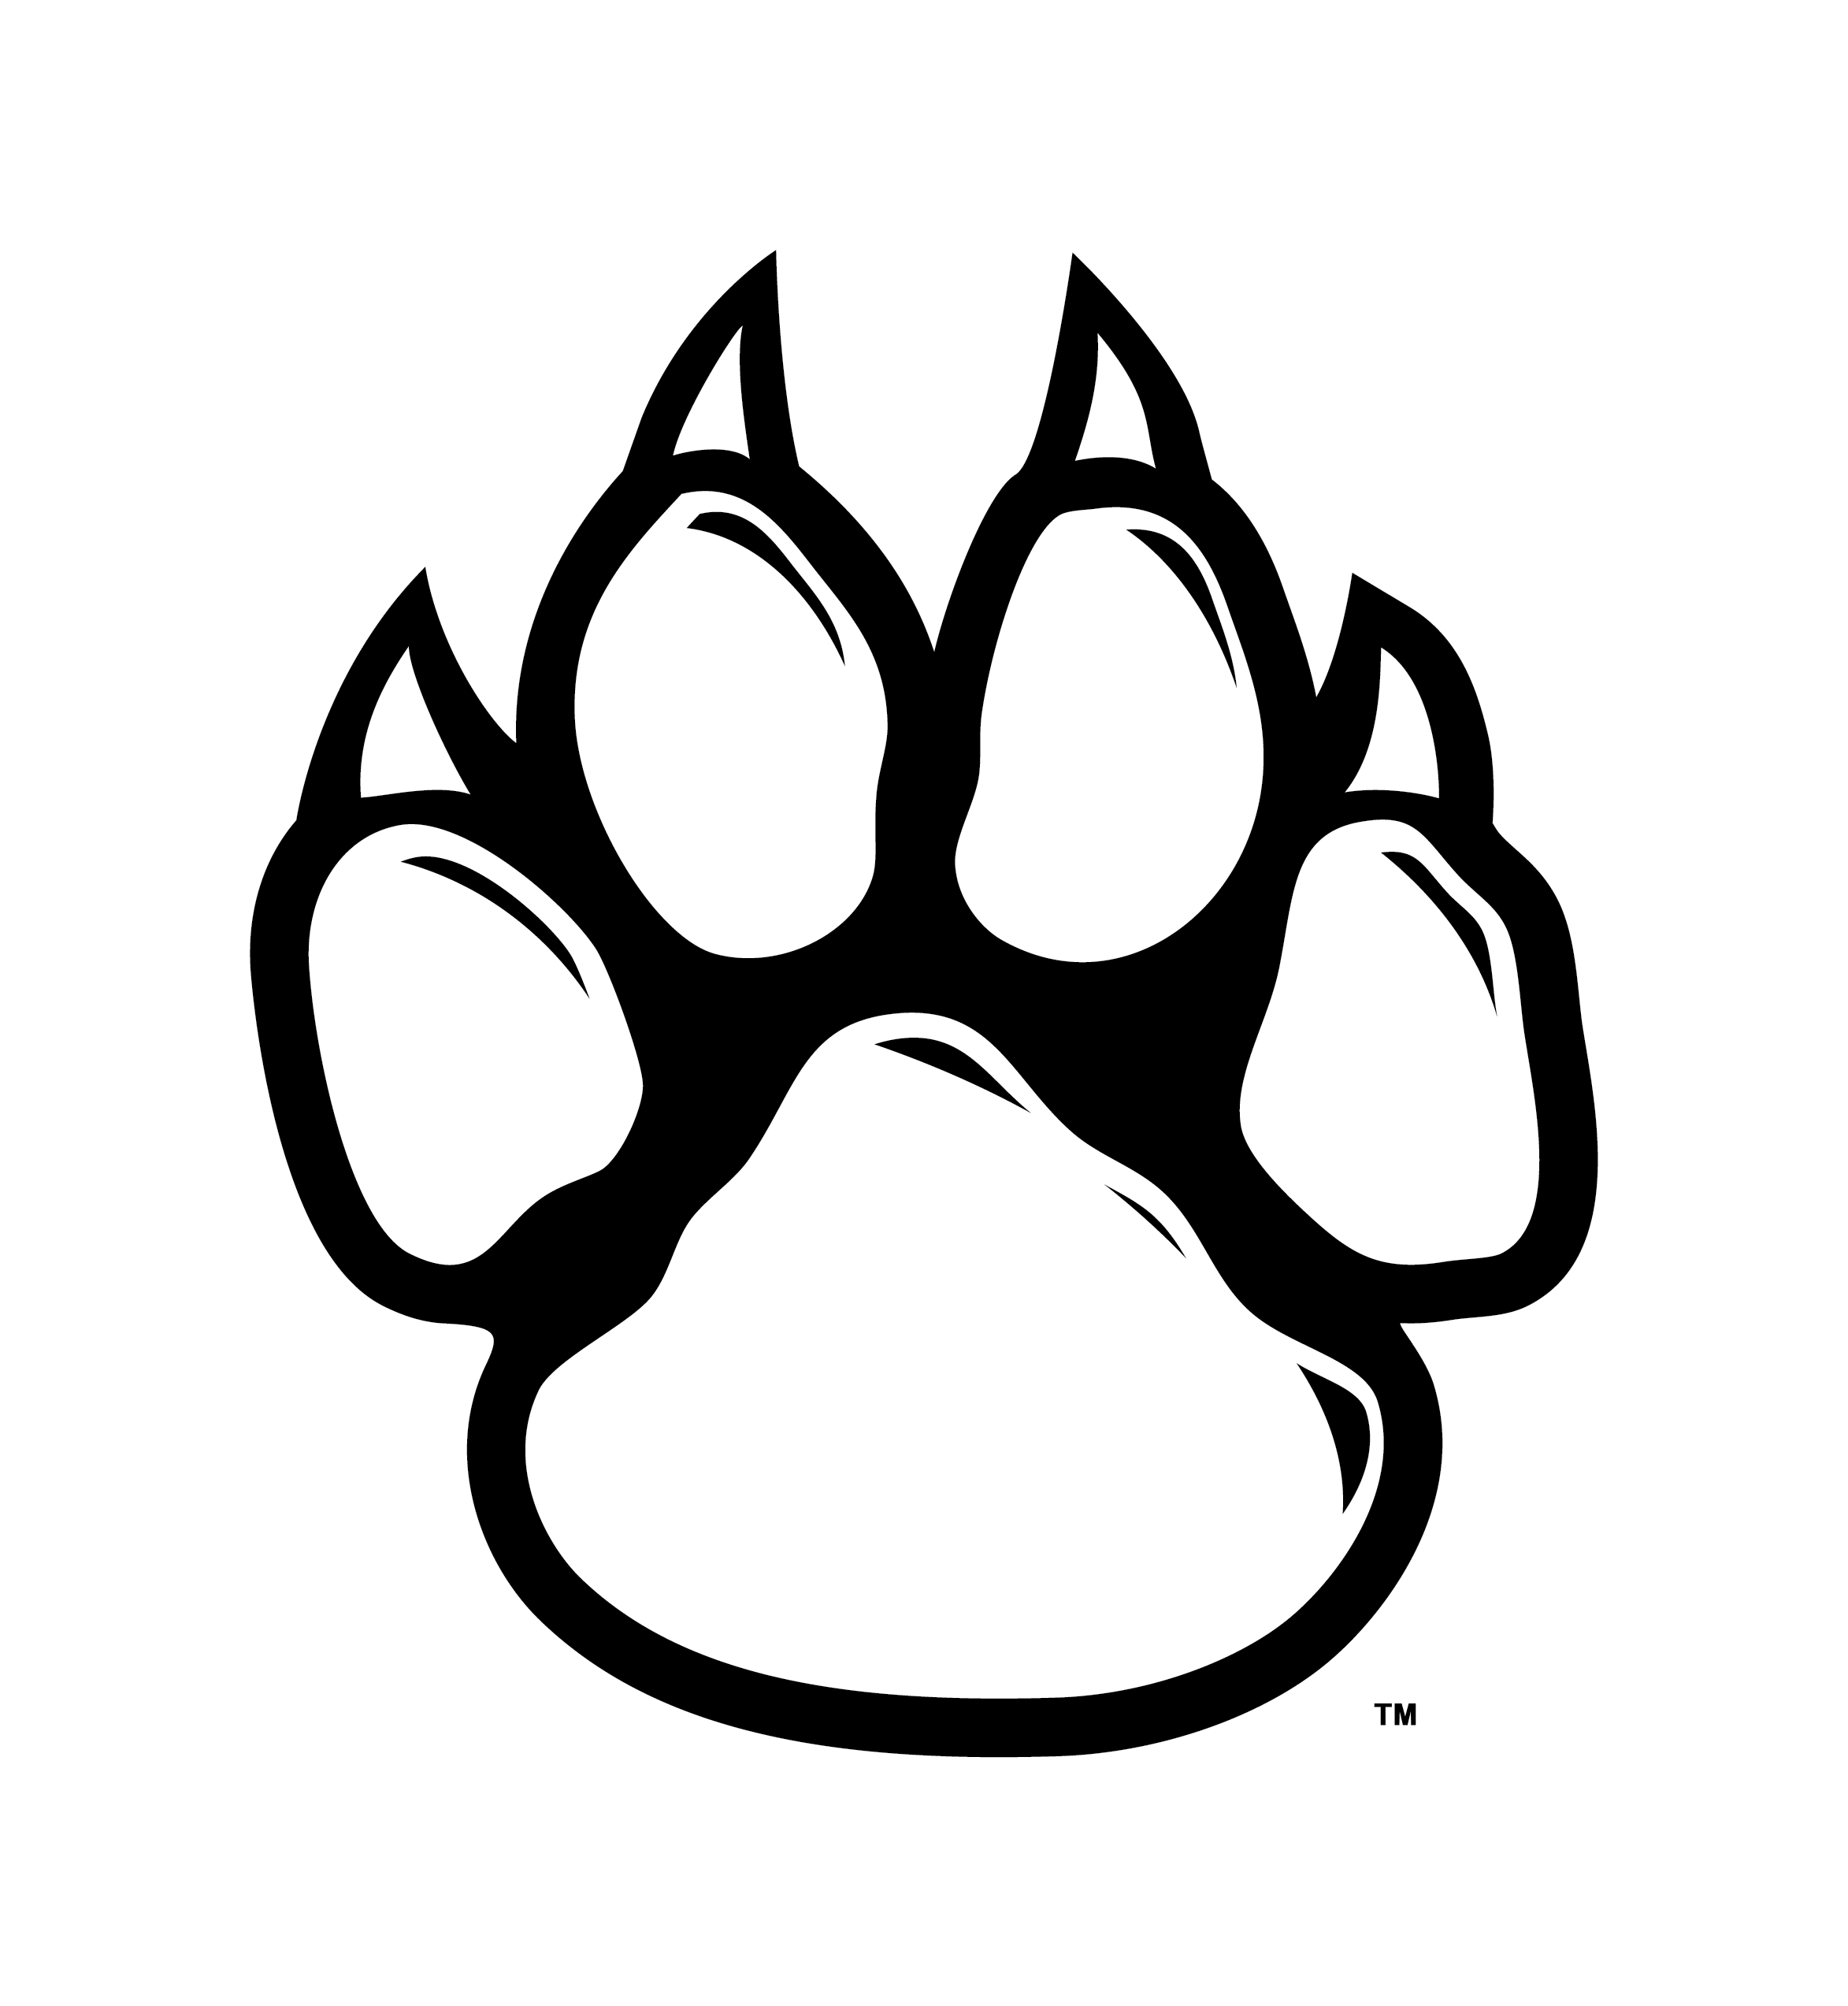 Panther paws png. Collection of paw